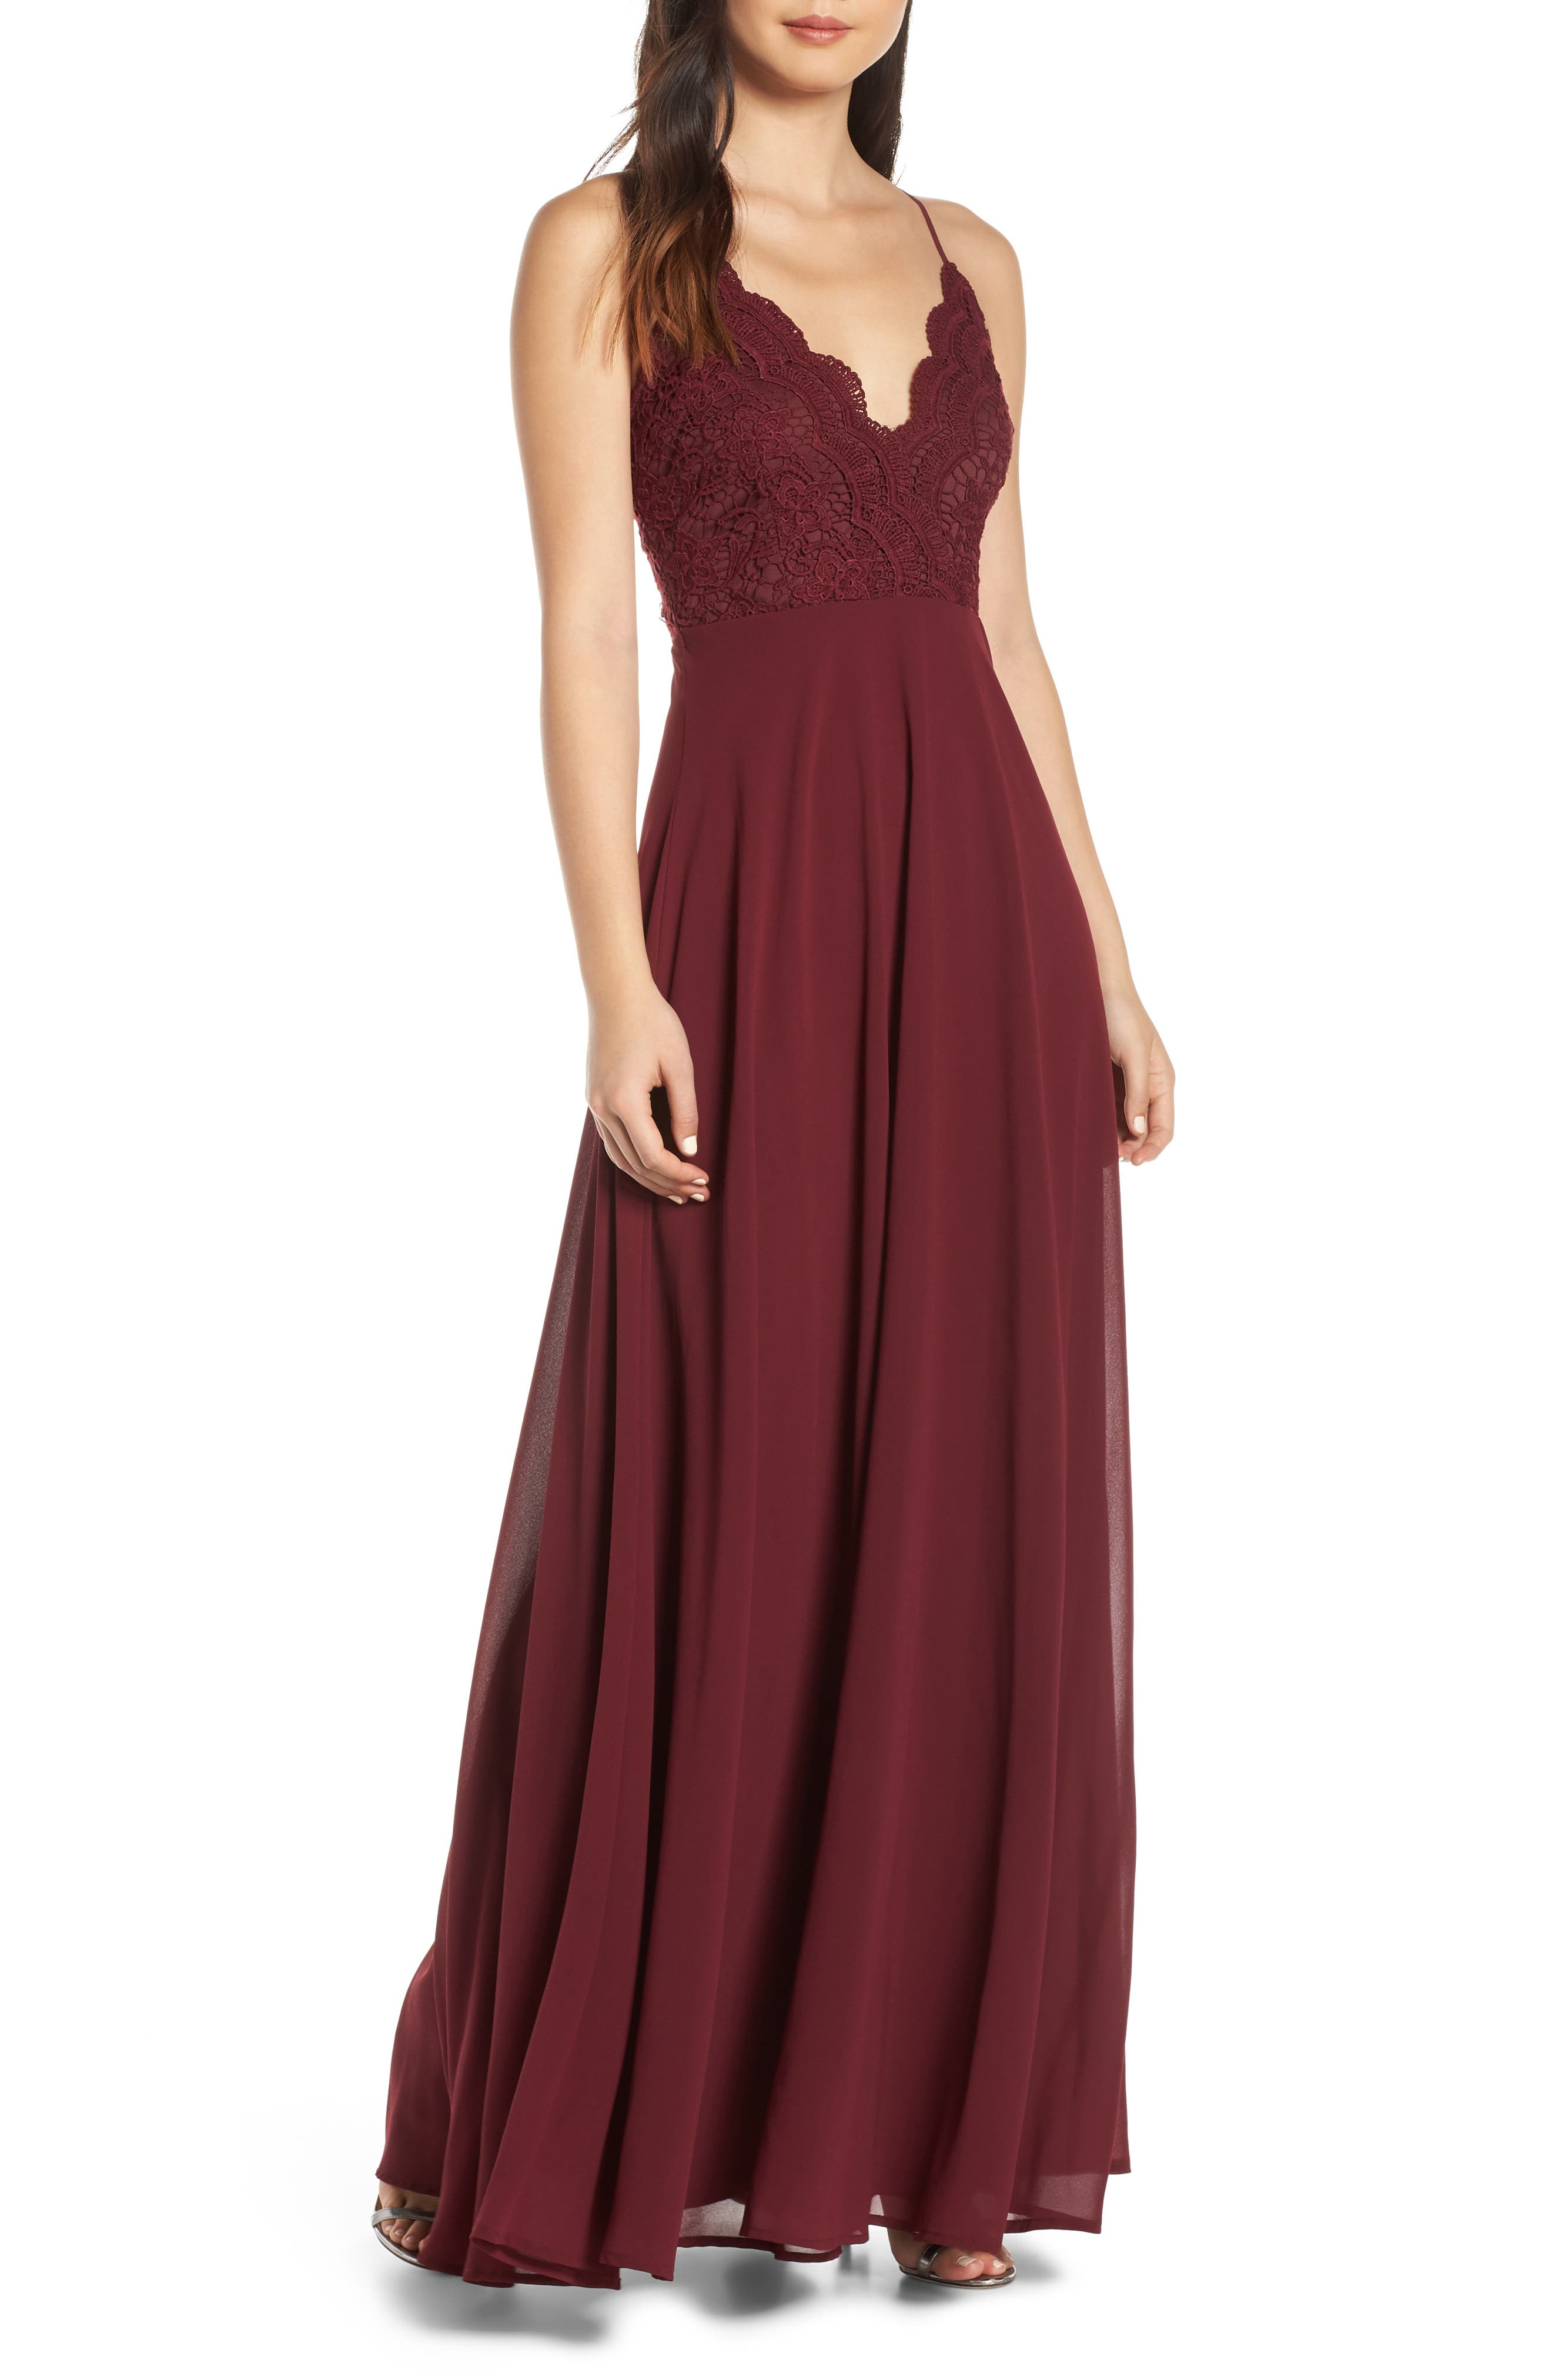 Lulus Madalyn V-Neck Lace & Chiffon Evening Dress, Red